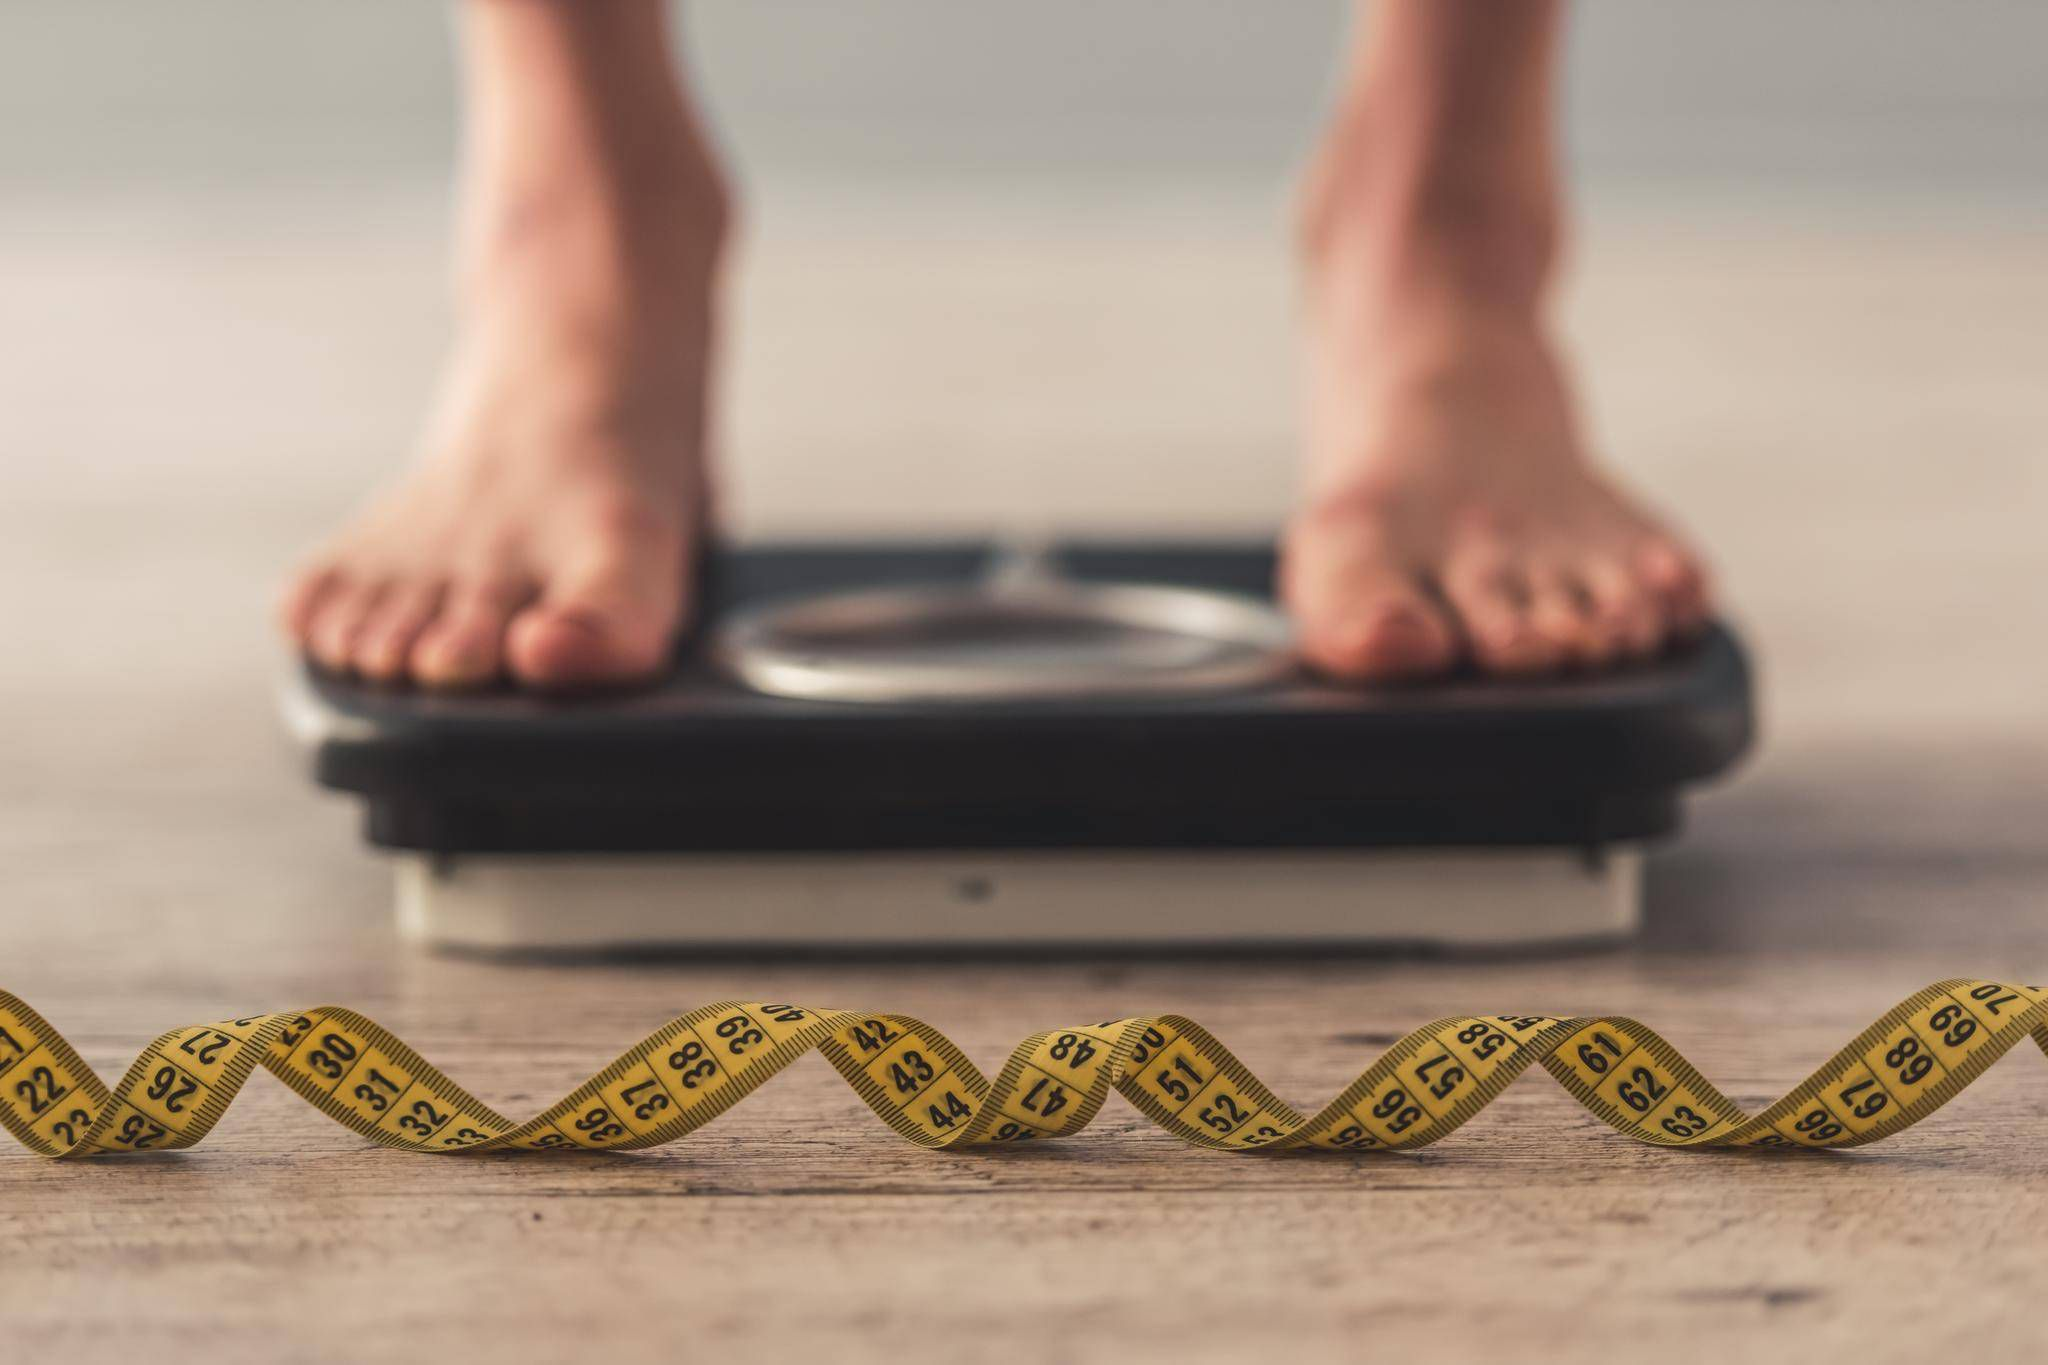 Canada lags OECD countries on action plan for obesity, report finds